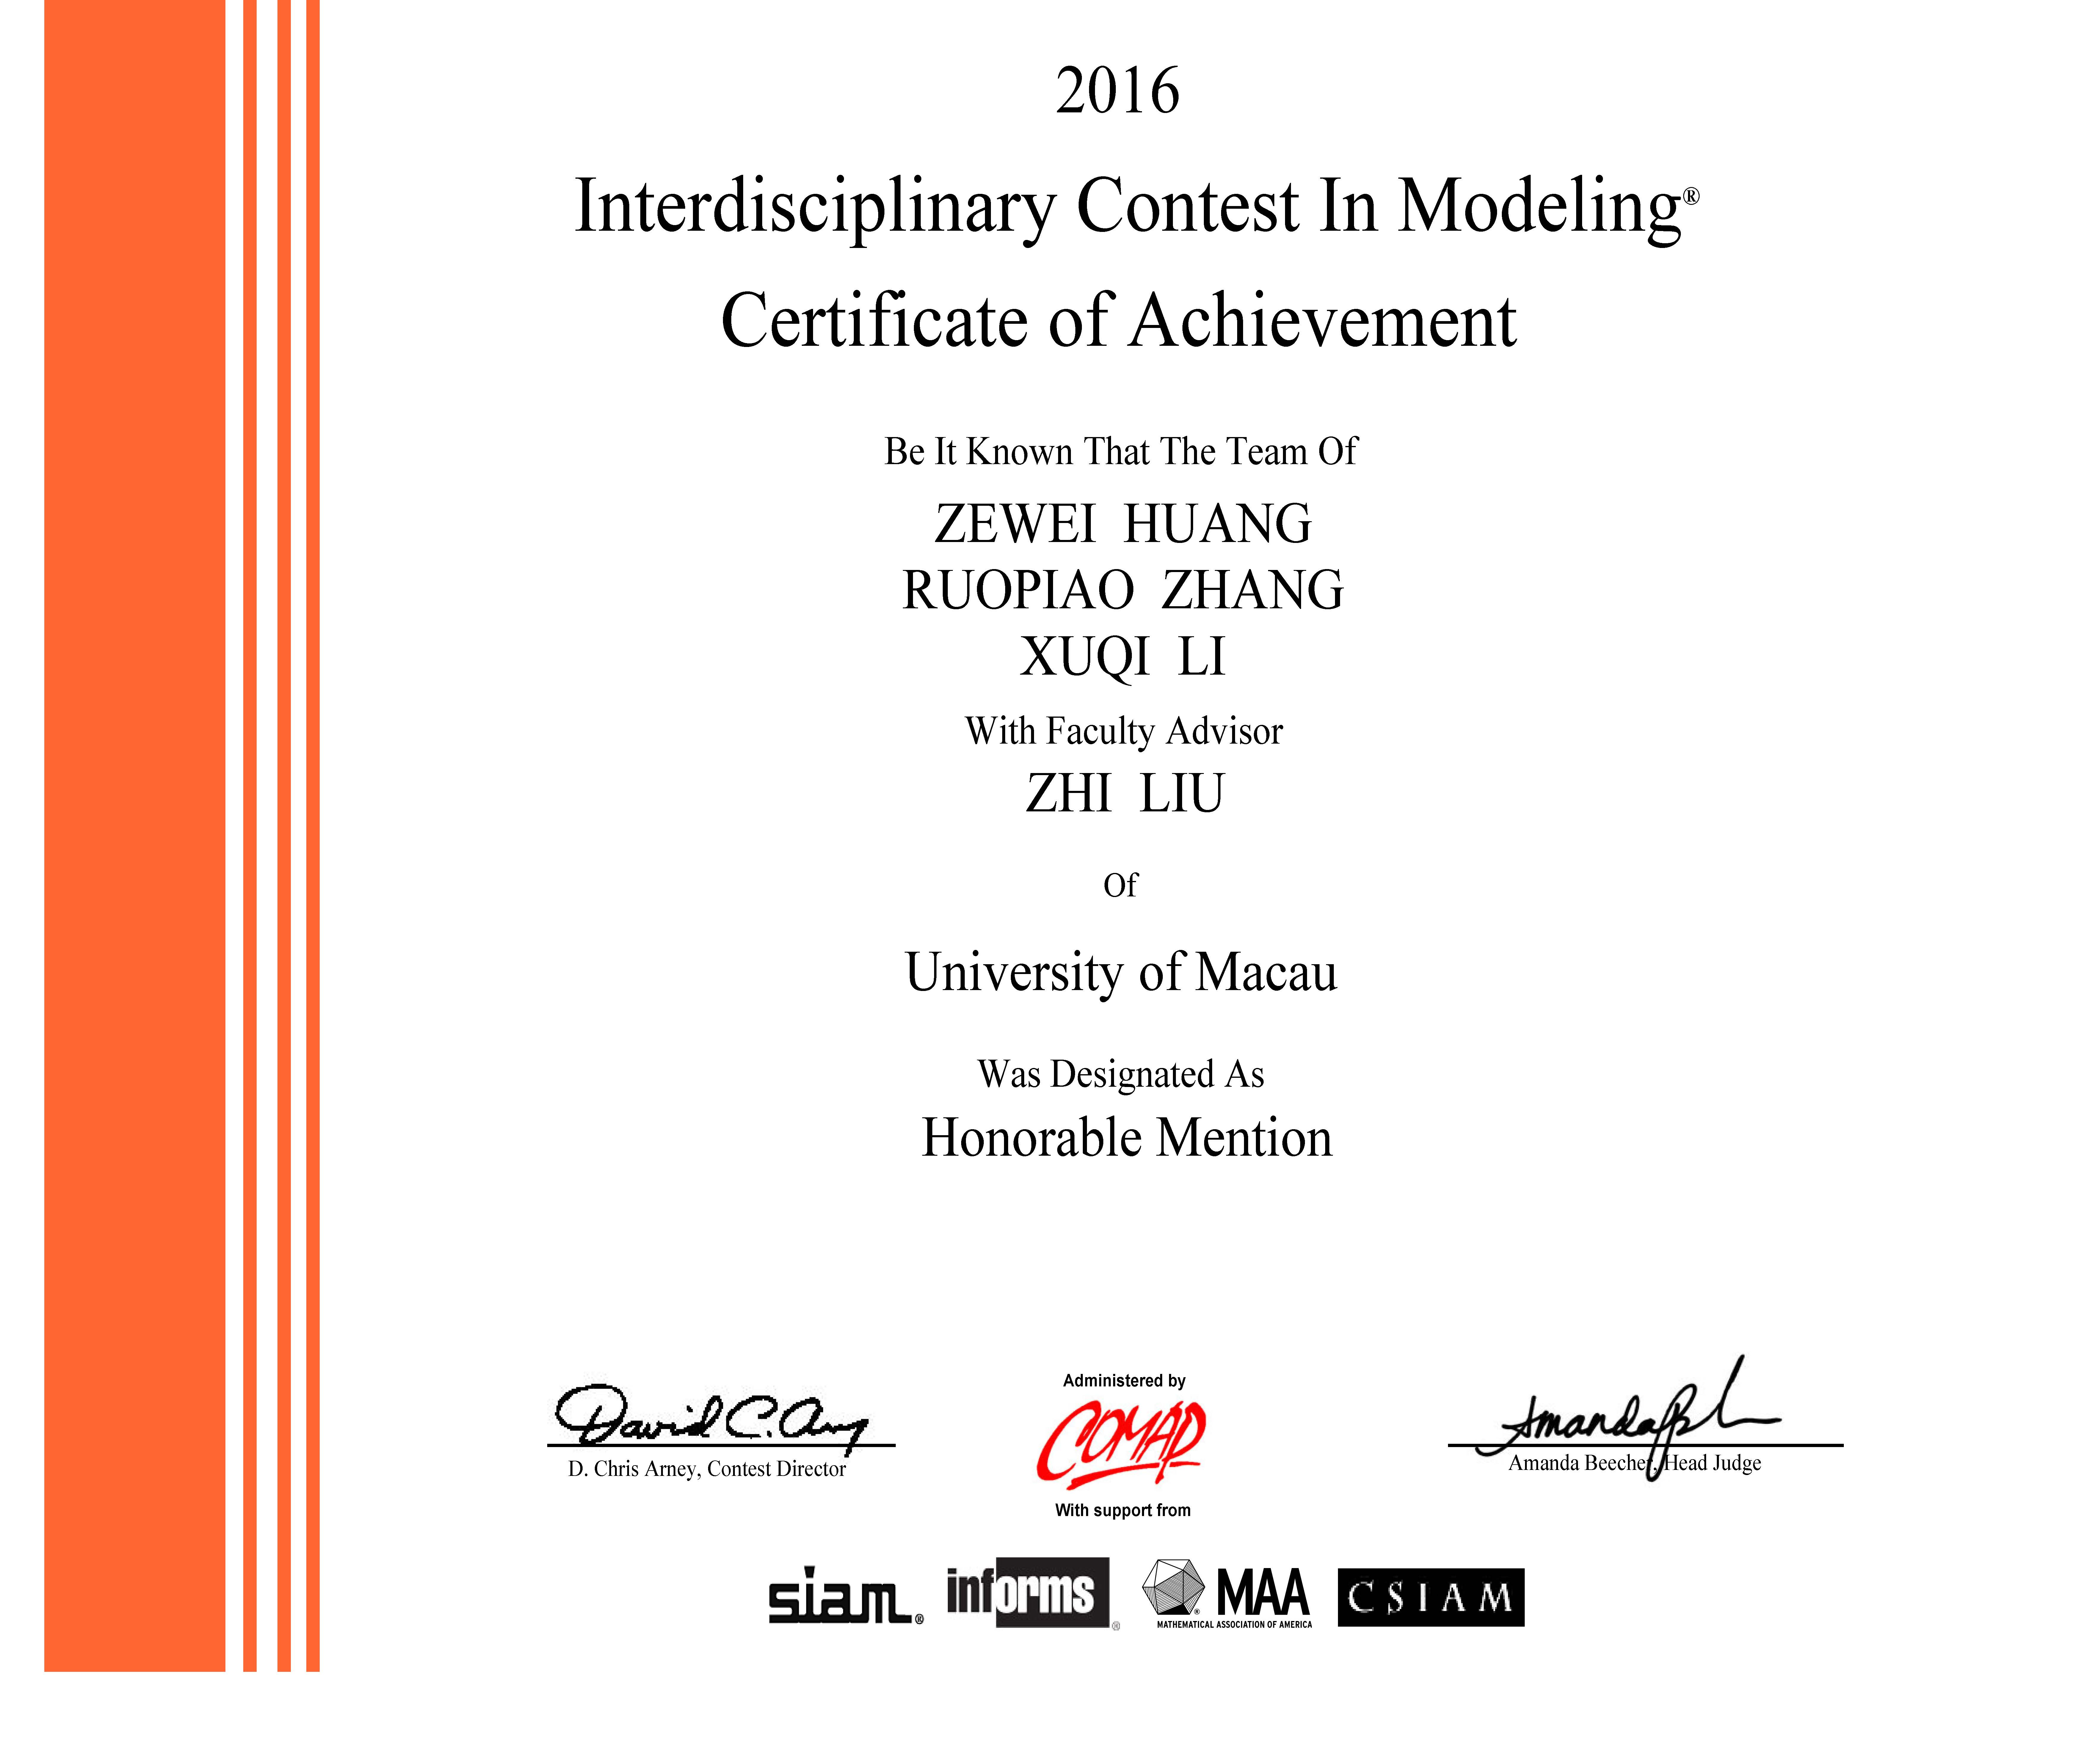 UM students win a second prize at the Interdisciplinary Contest in Modeling held in the US